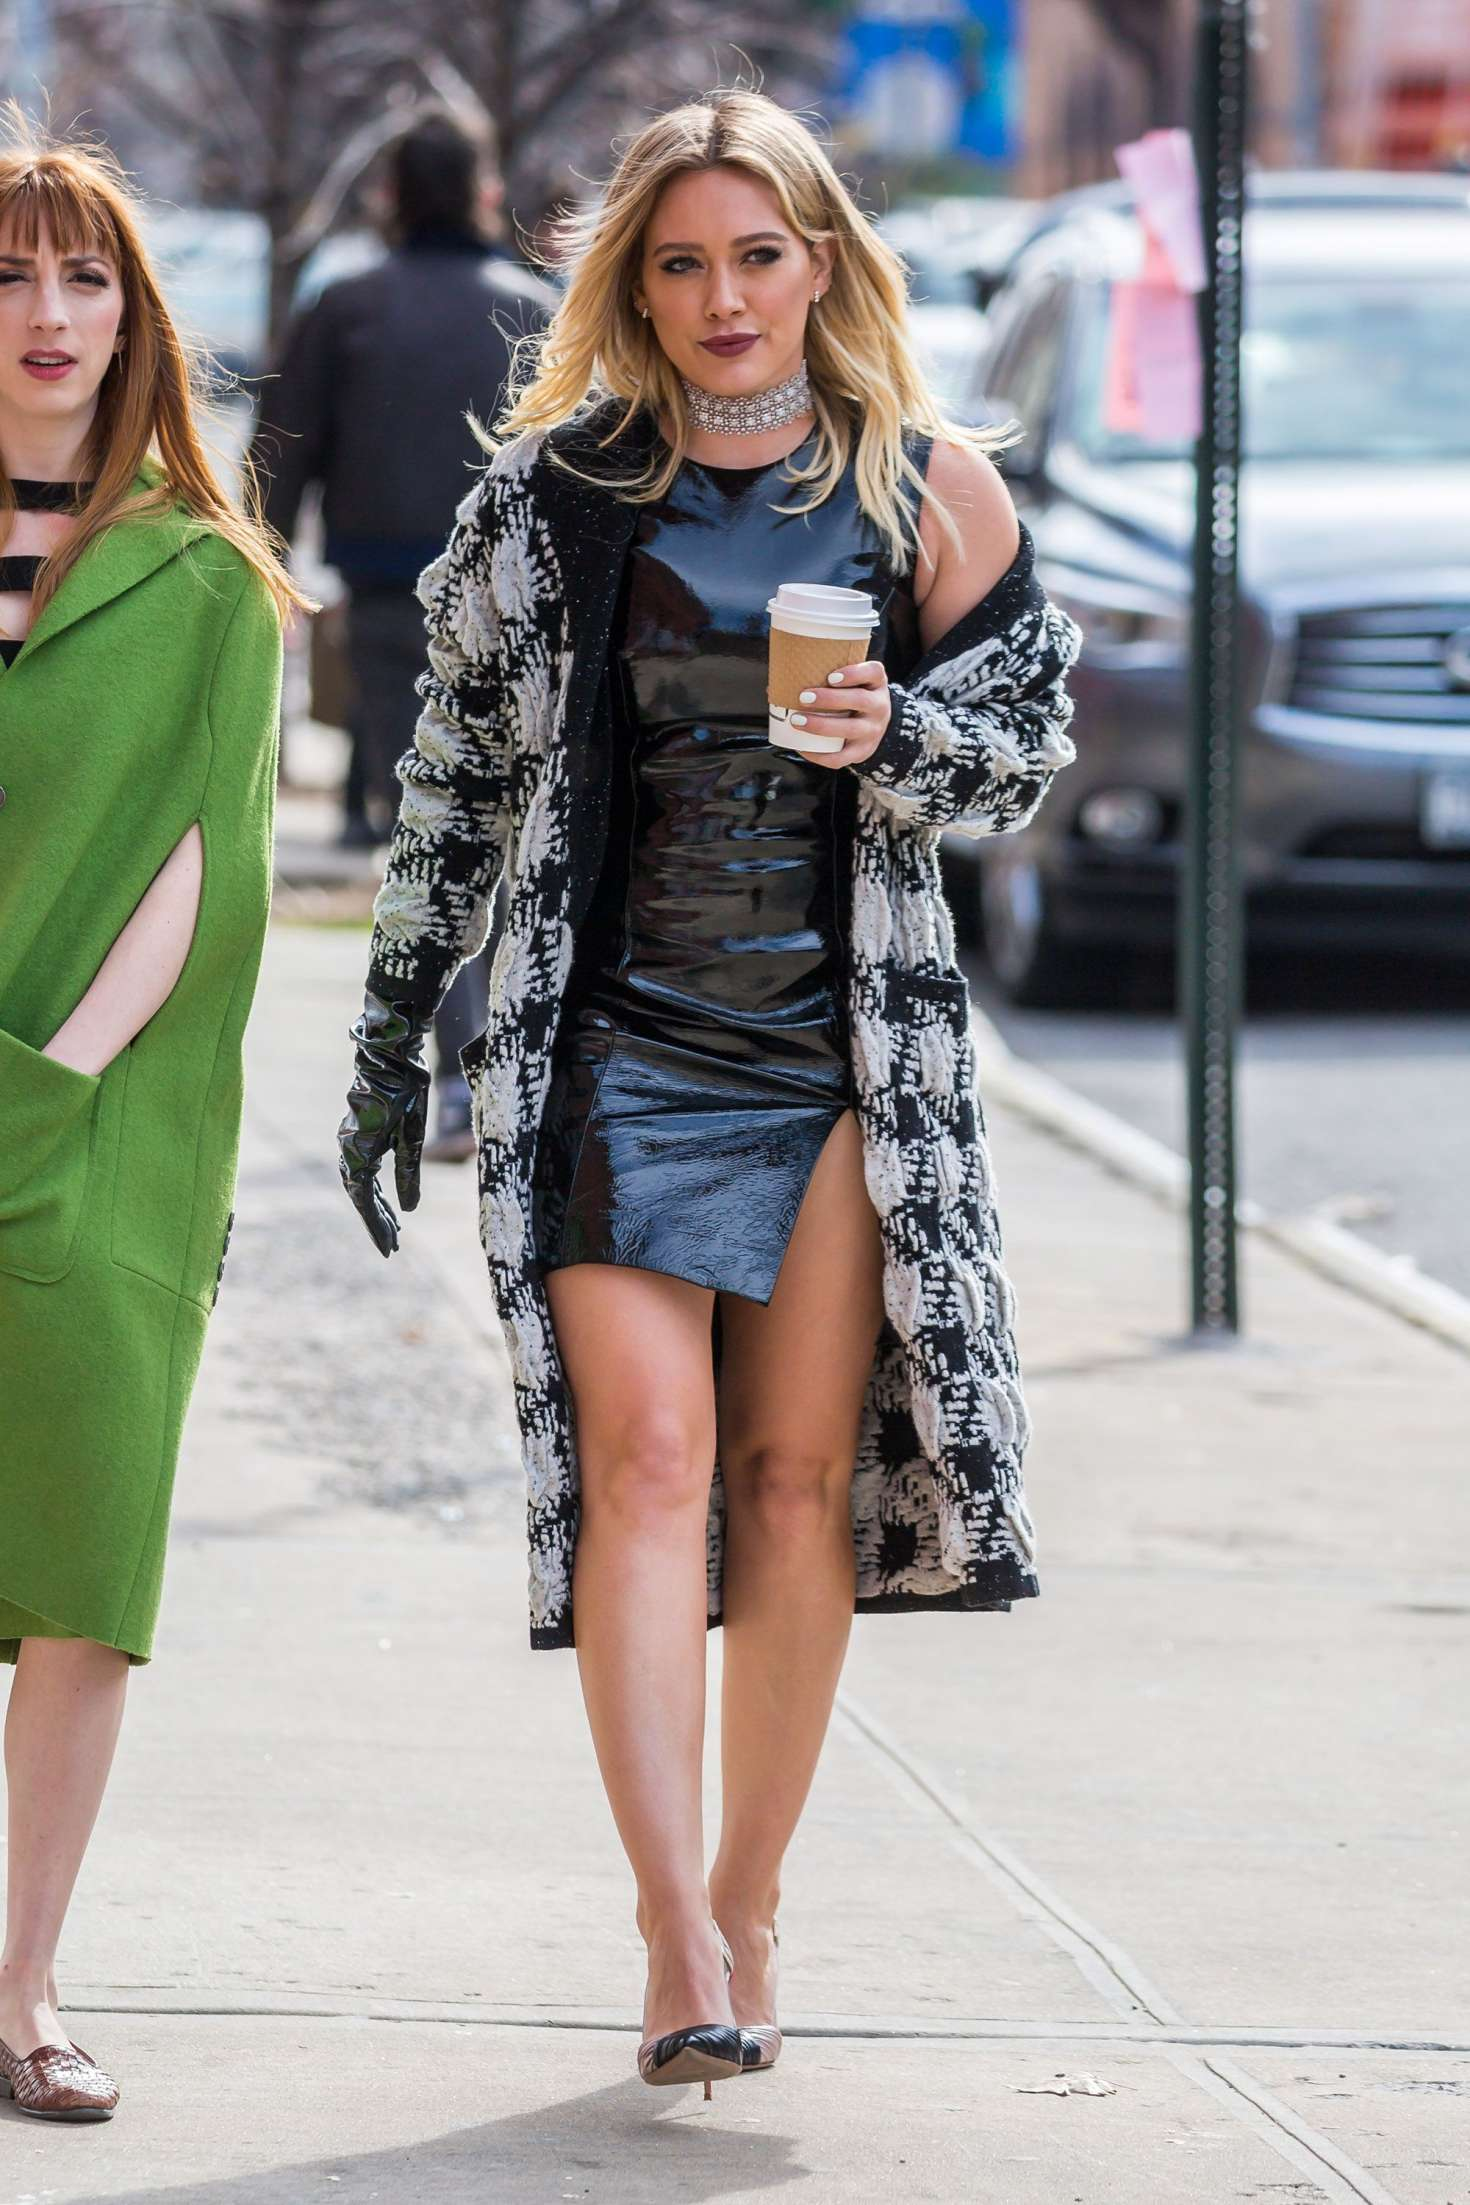 Hilary Duff 2015 : Hilary Duff on the set of Younger -14